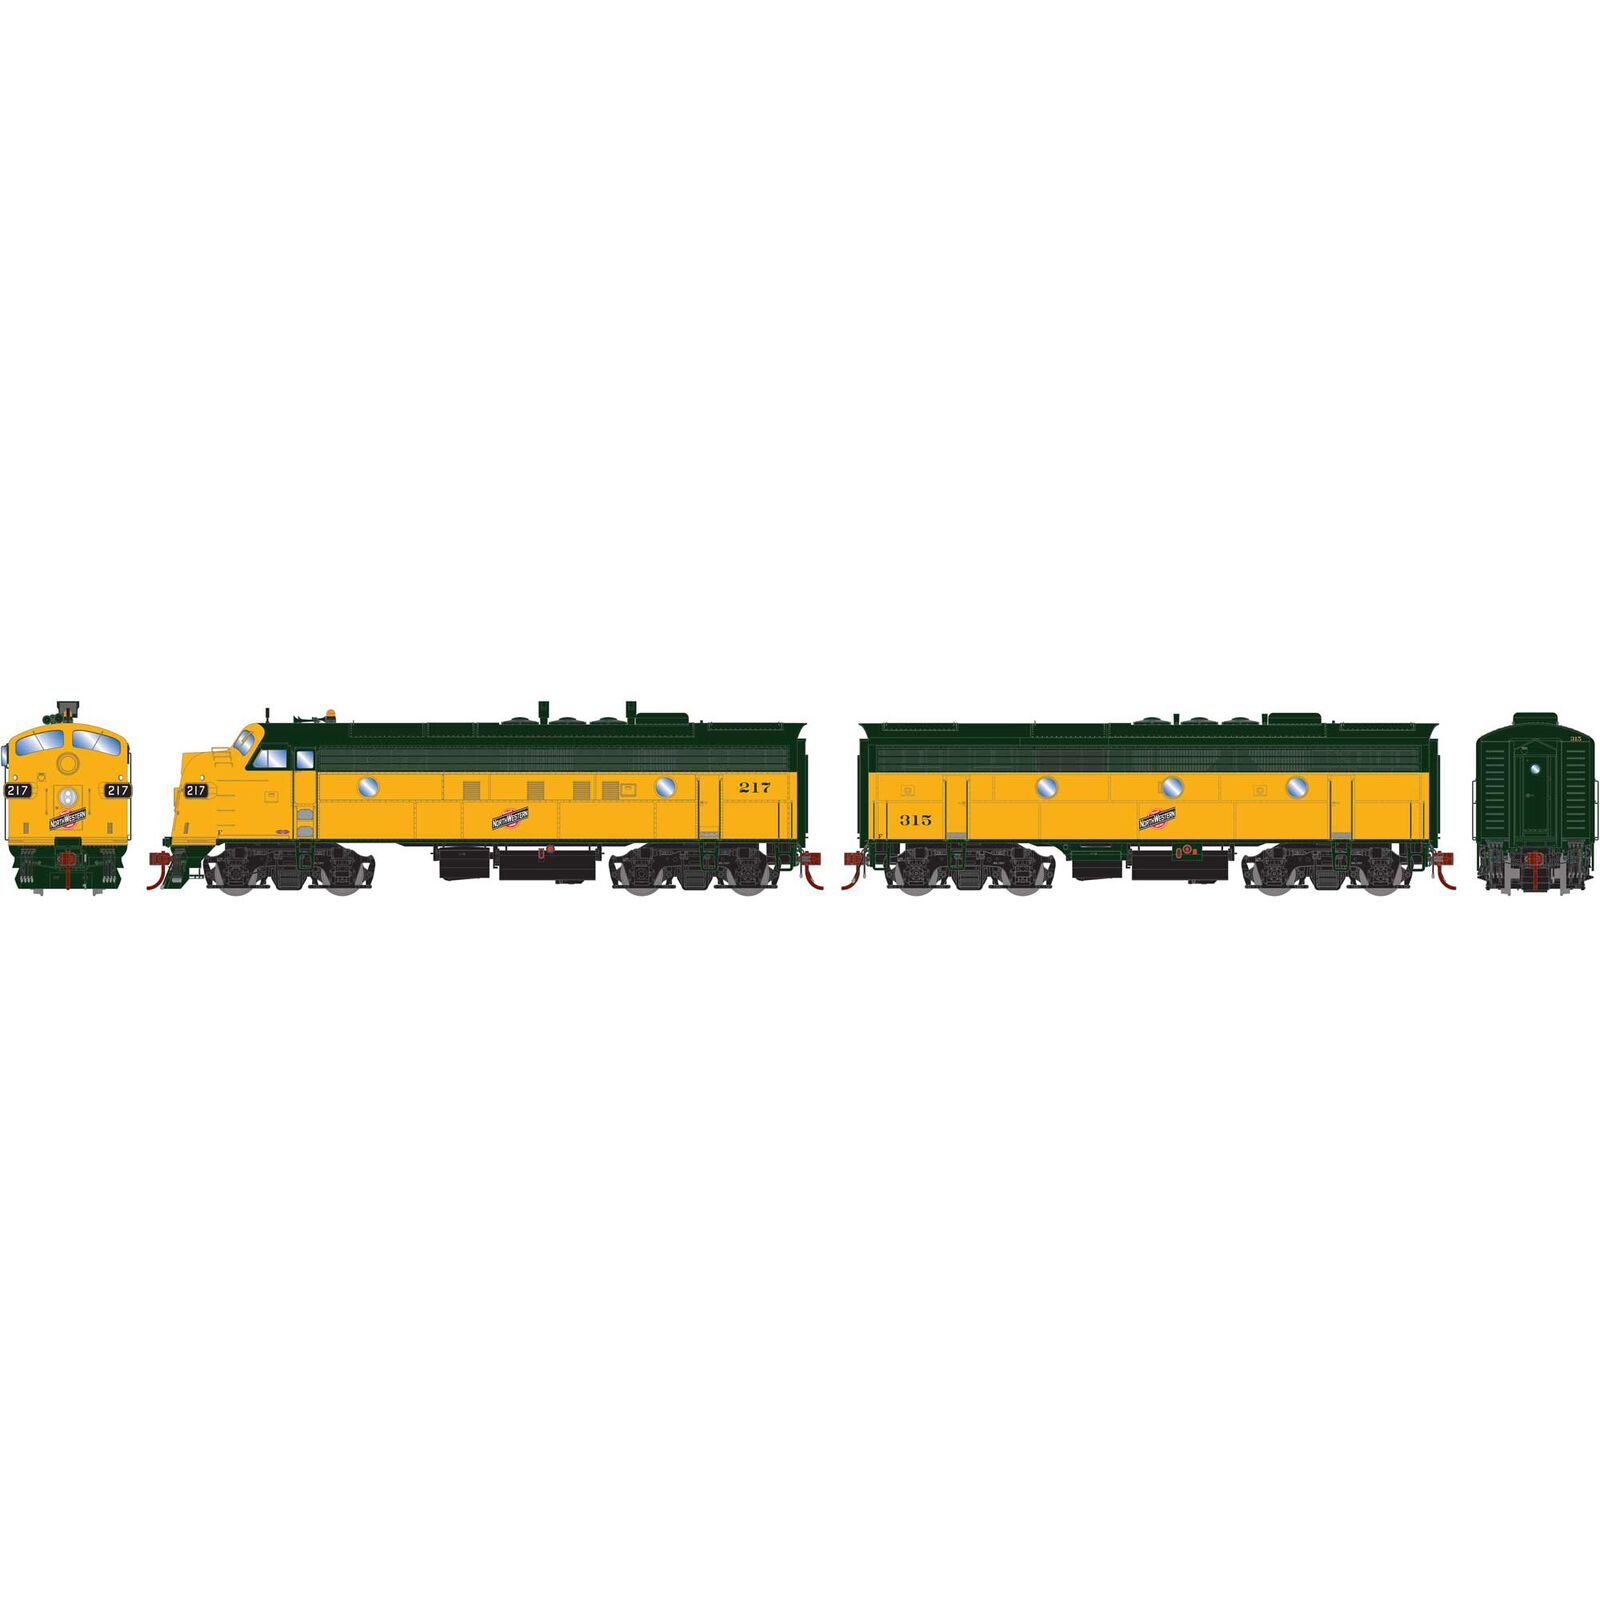 HO FP7A F7B with DCC & Sound C&NW #217 #315